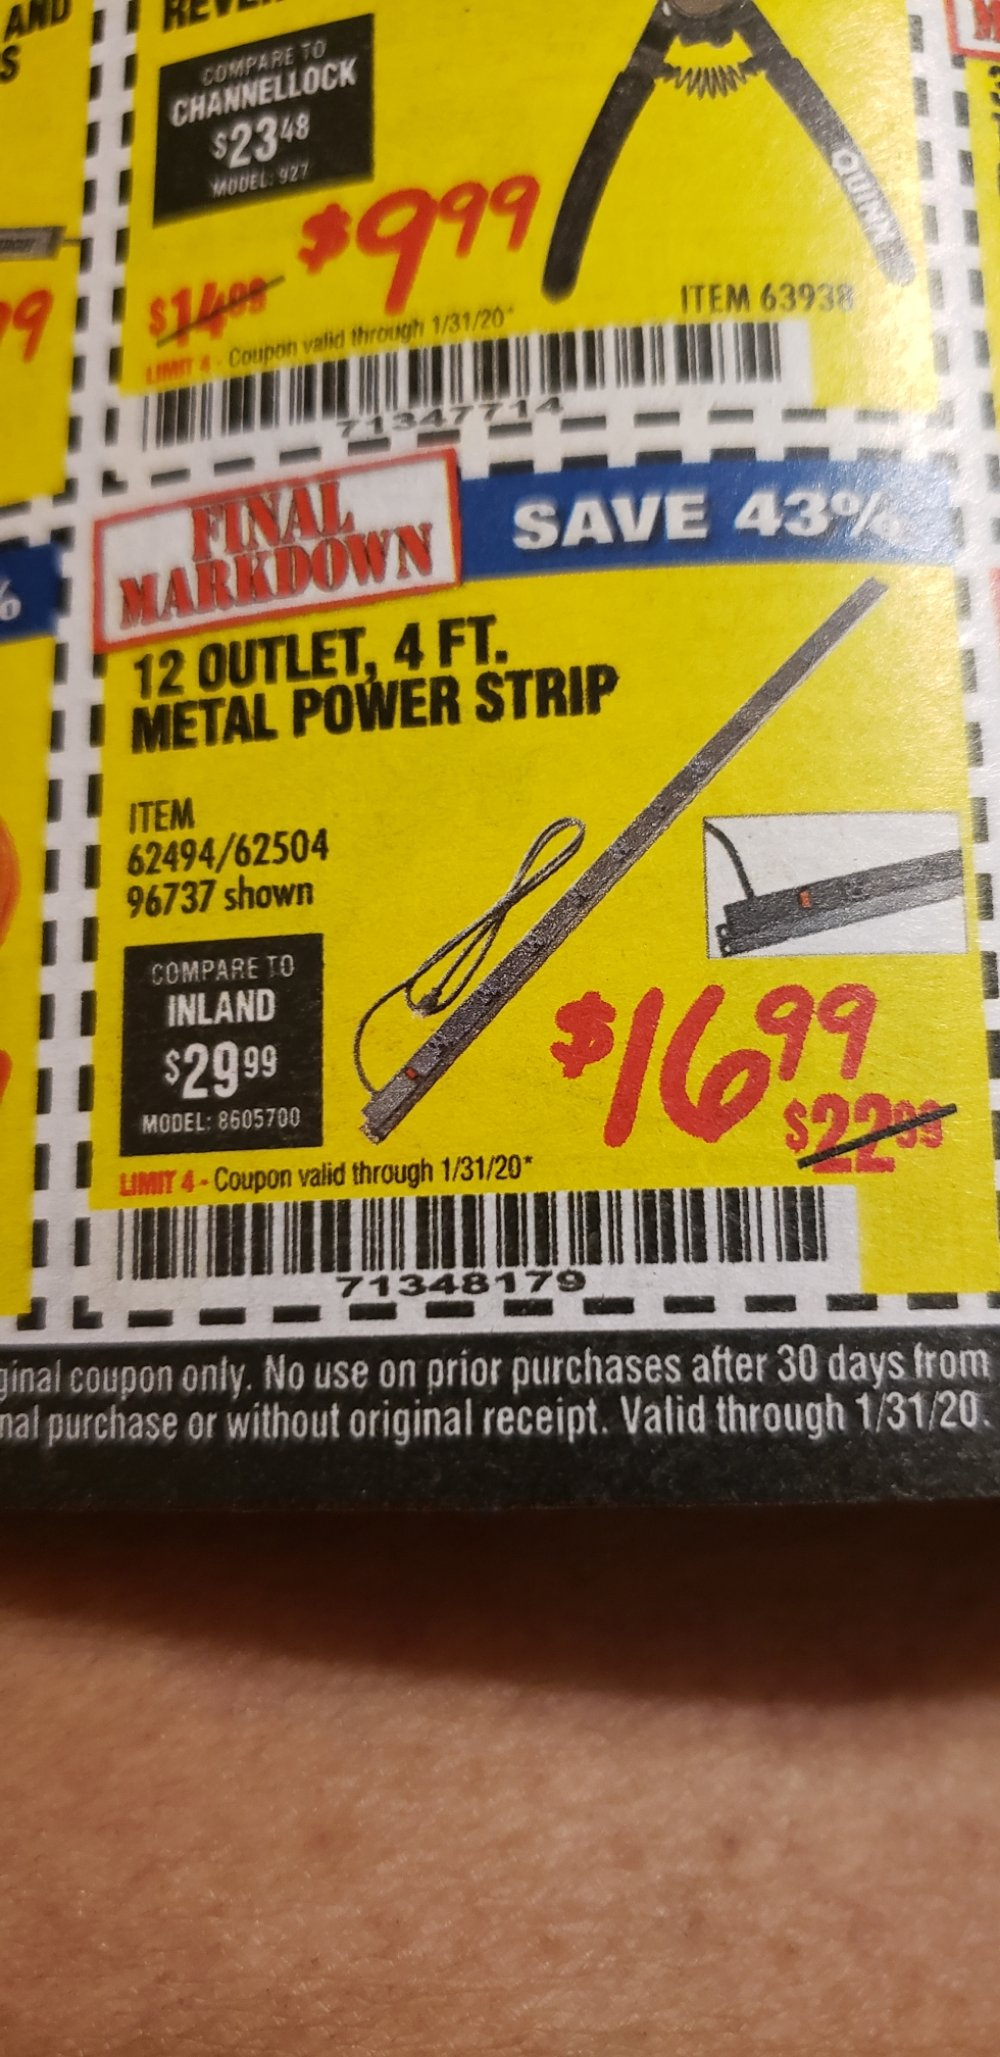 Harbor Freight Coupon, HF Coupons - 12 Outlet 4 Ft. Metal Power Strip